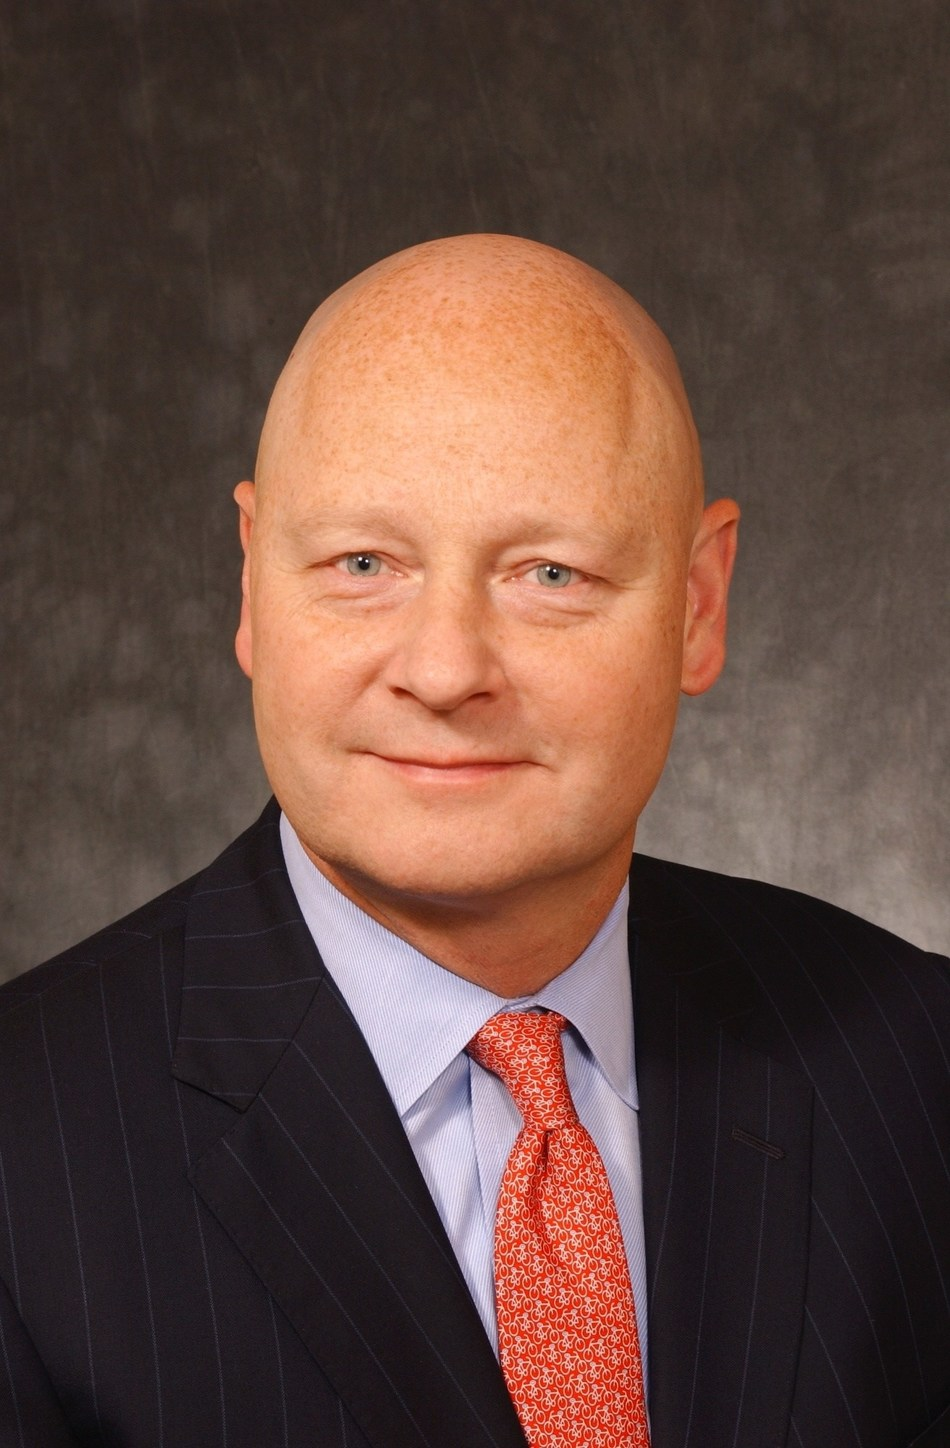 Mark Midkiff, joining KeyCorp as Chief Risk Officer on January 22, 2018